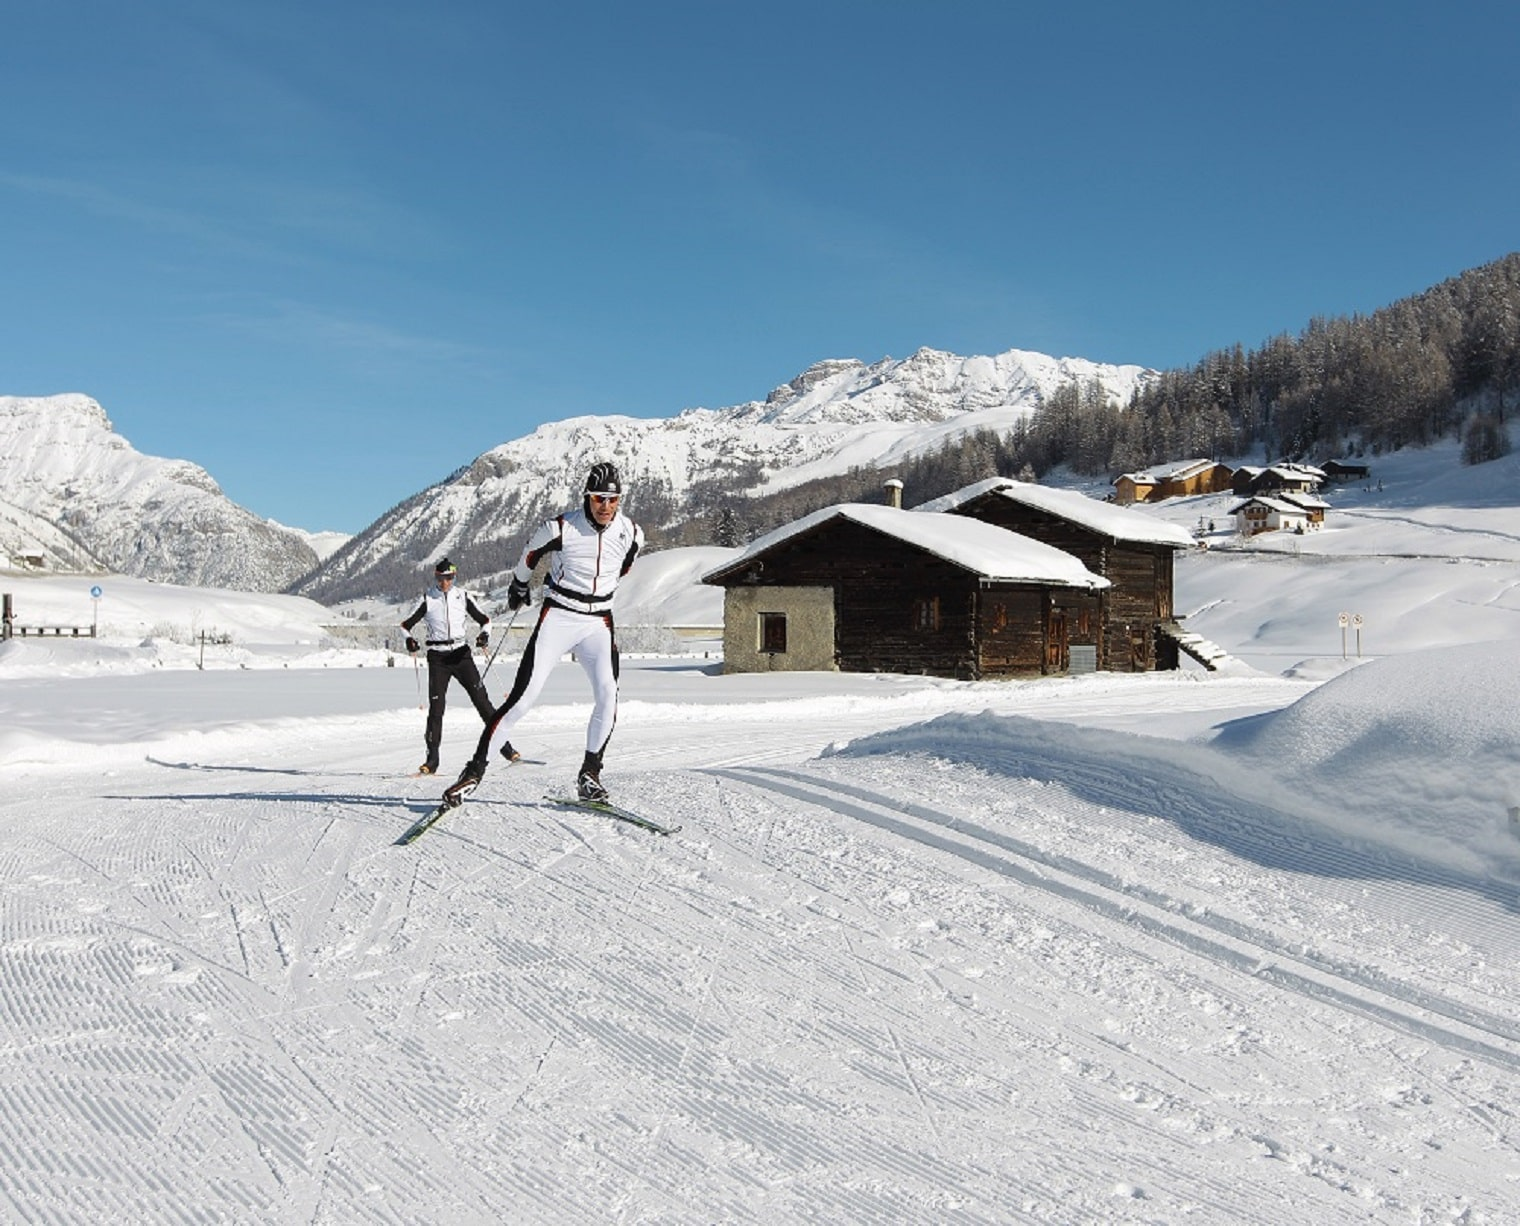 Cross_country_skiing_Livigno-min.jpg